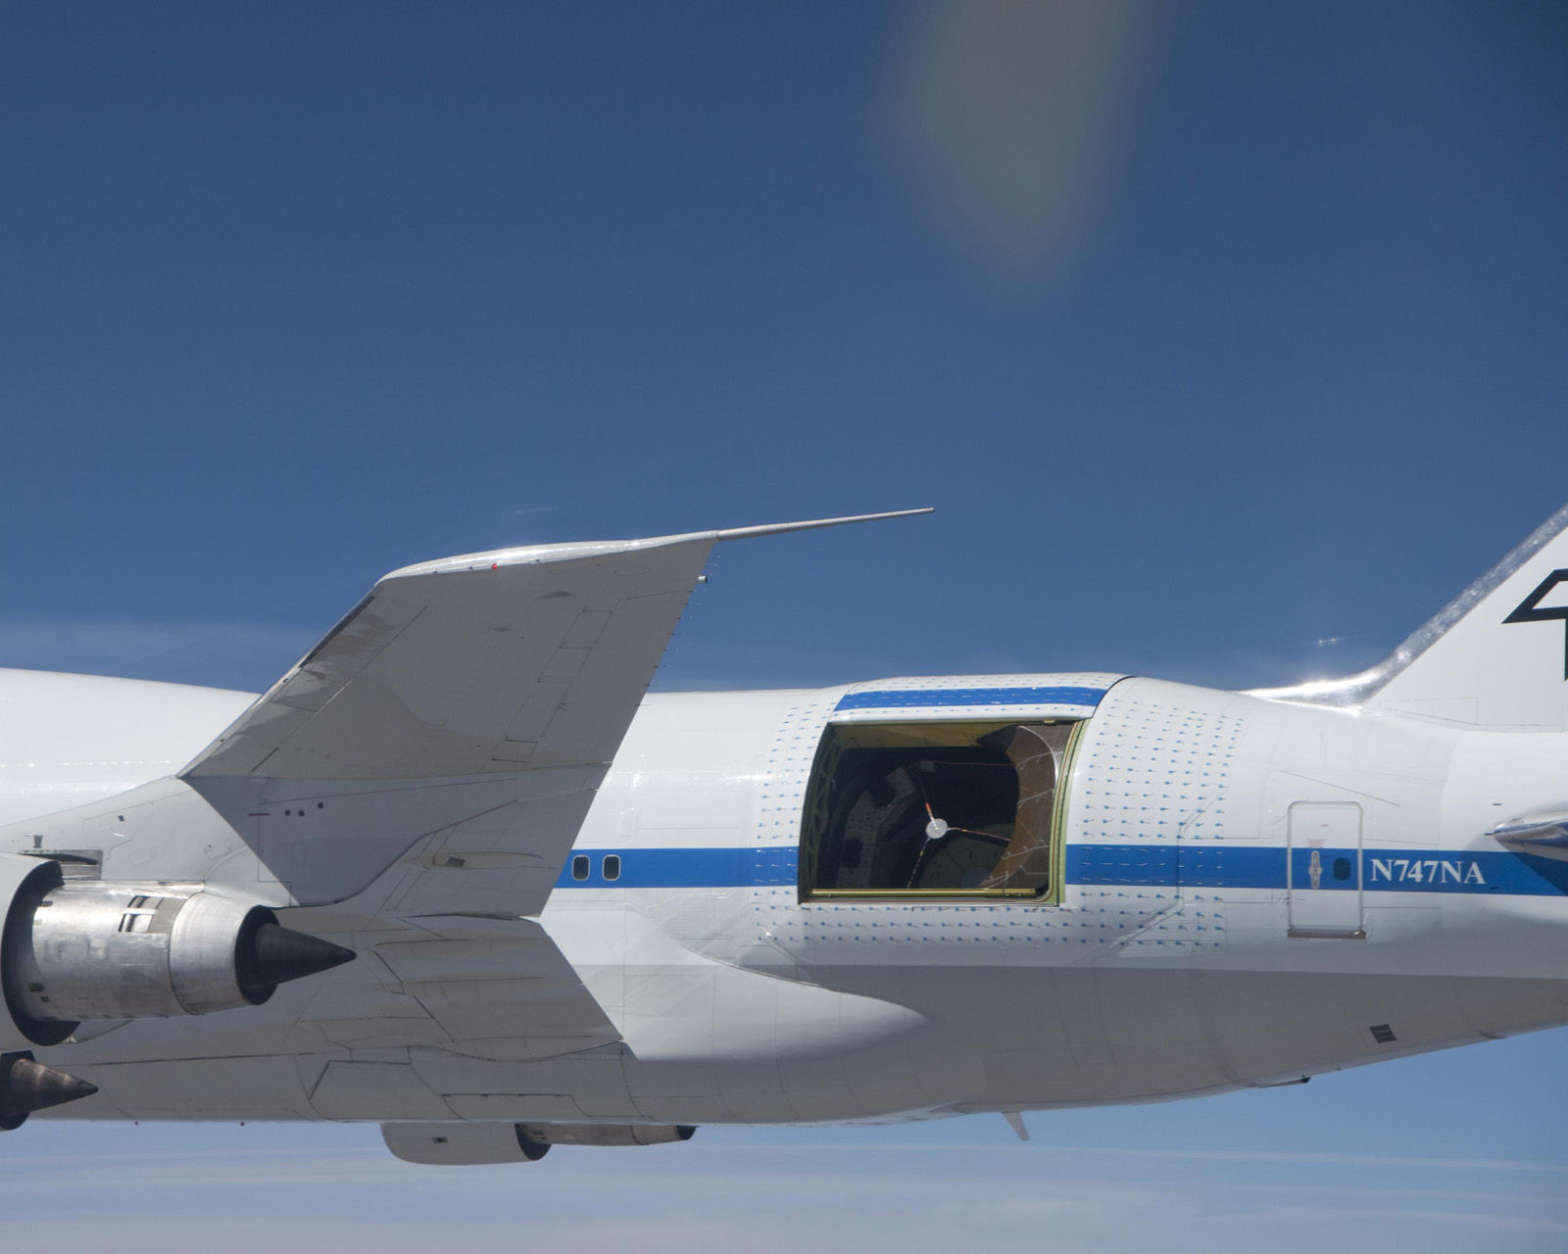 With its primary mirror covered by a protective sun shade, the German-built infrared telescope nestled in its cavity in the rear fuselage of NASA's SOFIA flying observatory is easily visible in this close-up image taken during a test flight. The small blue lines surrounding the telescope cavity are aerodynamic tufts to visibly show how air flows over the cavity in different flight attitudes. (Courtesy NASA/USRA)